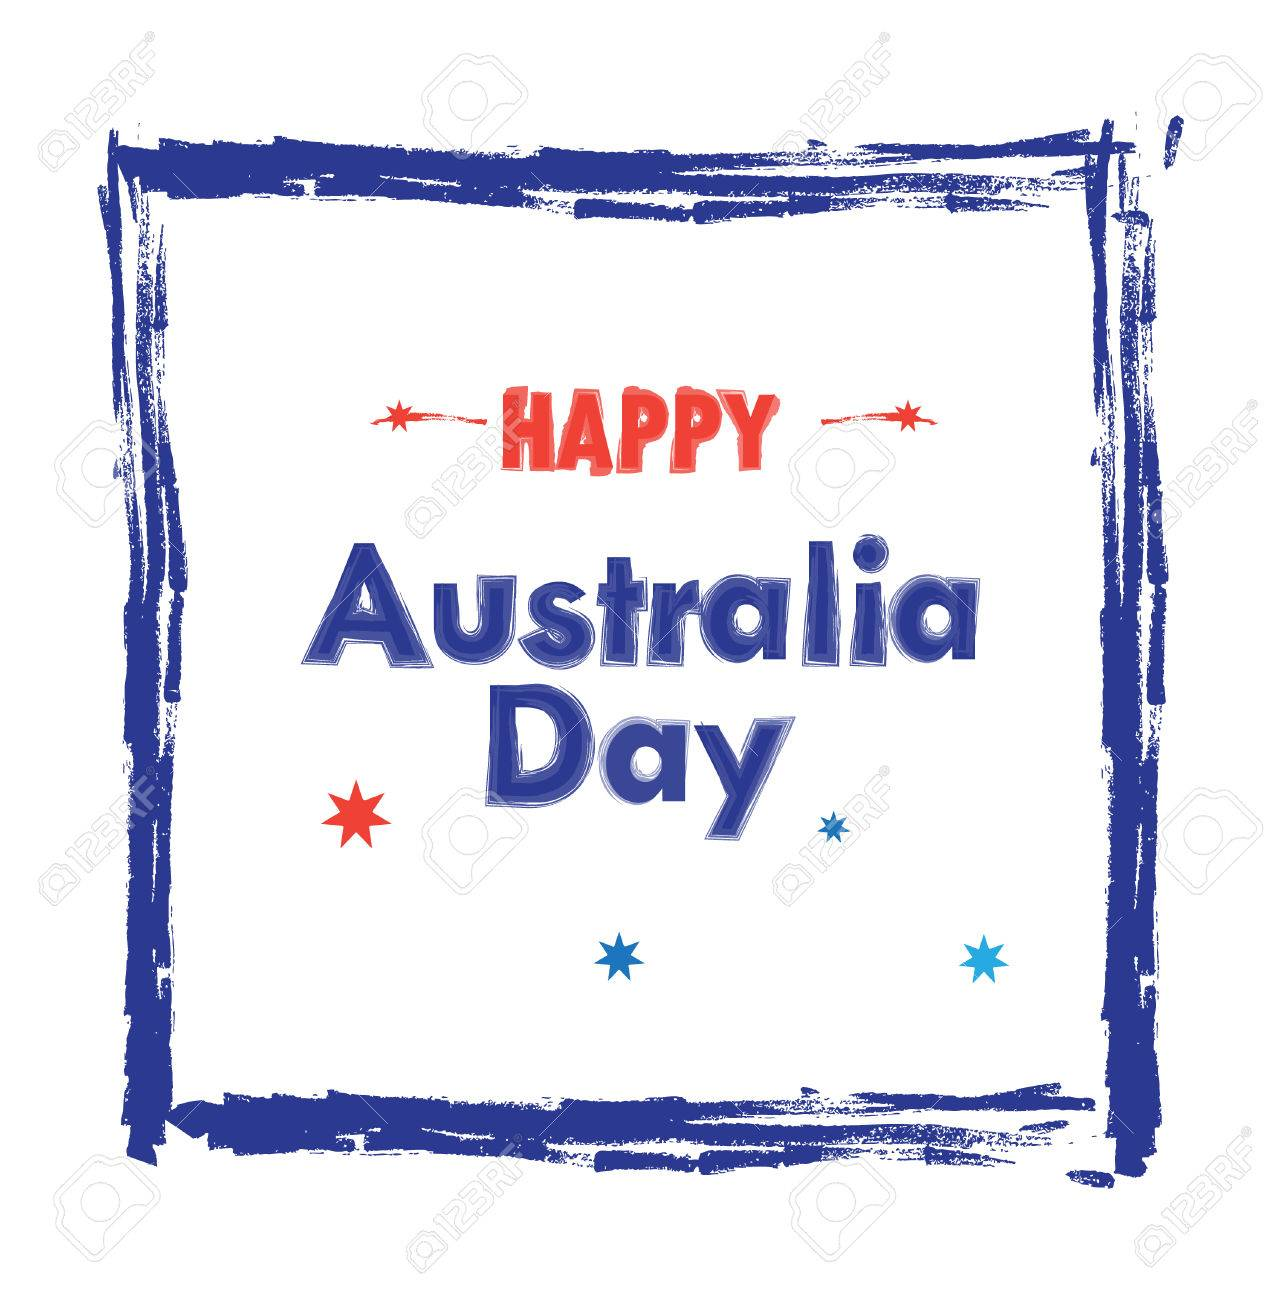 Happy Australia Day Lettering In Blue Hand Drawn Frame On White ...